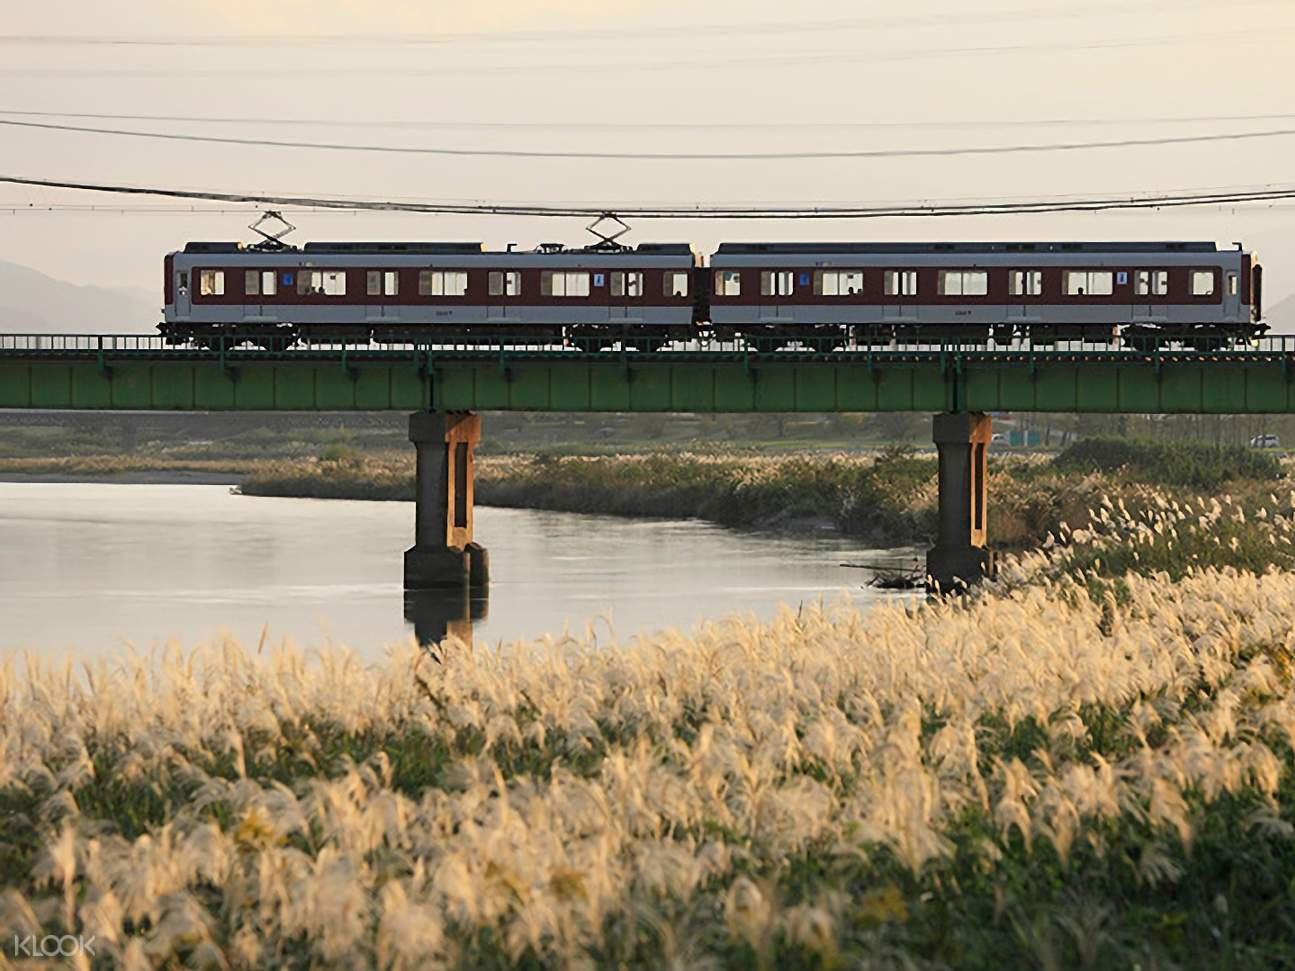 Kintetsu Railway with view of river underneath